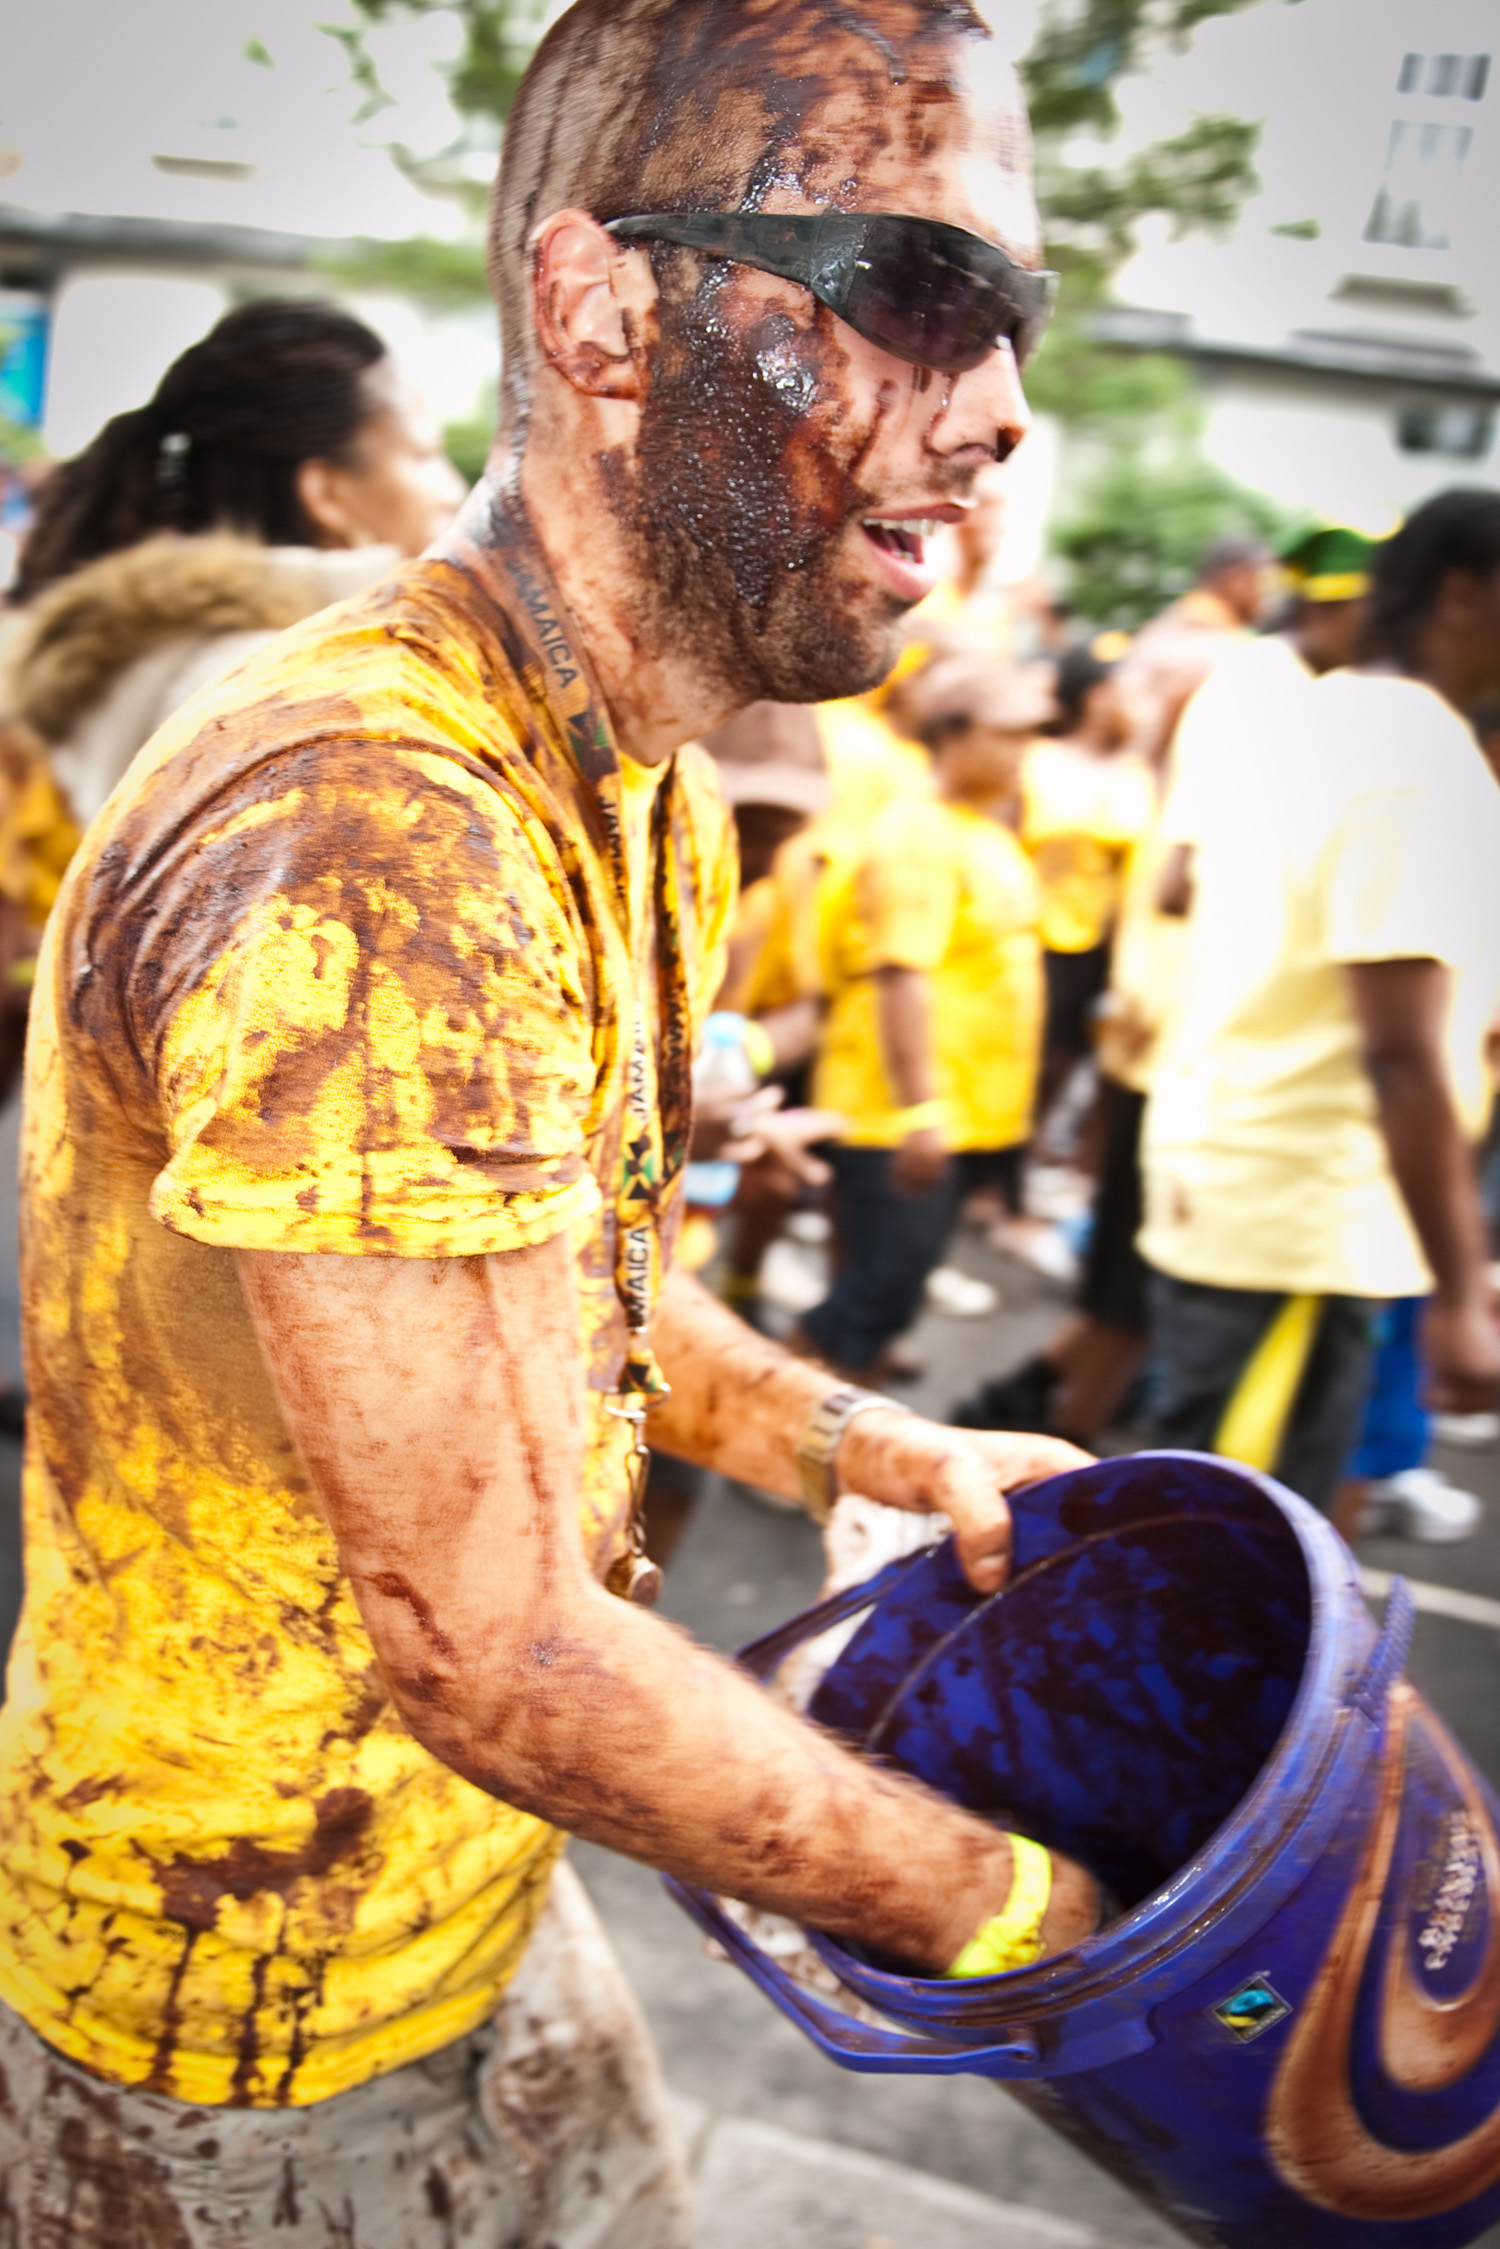 Carnival_the_chocolate_14